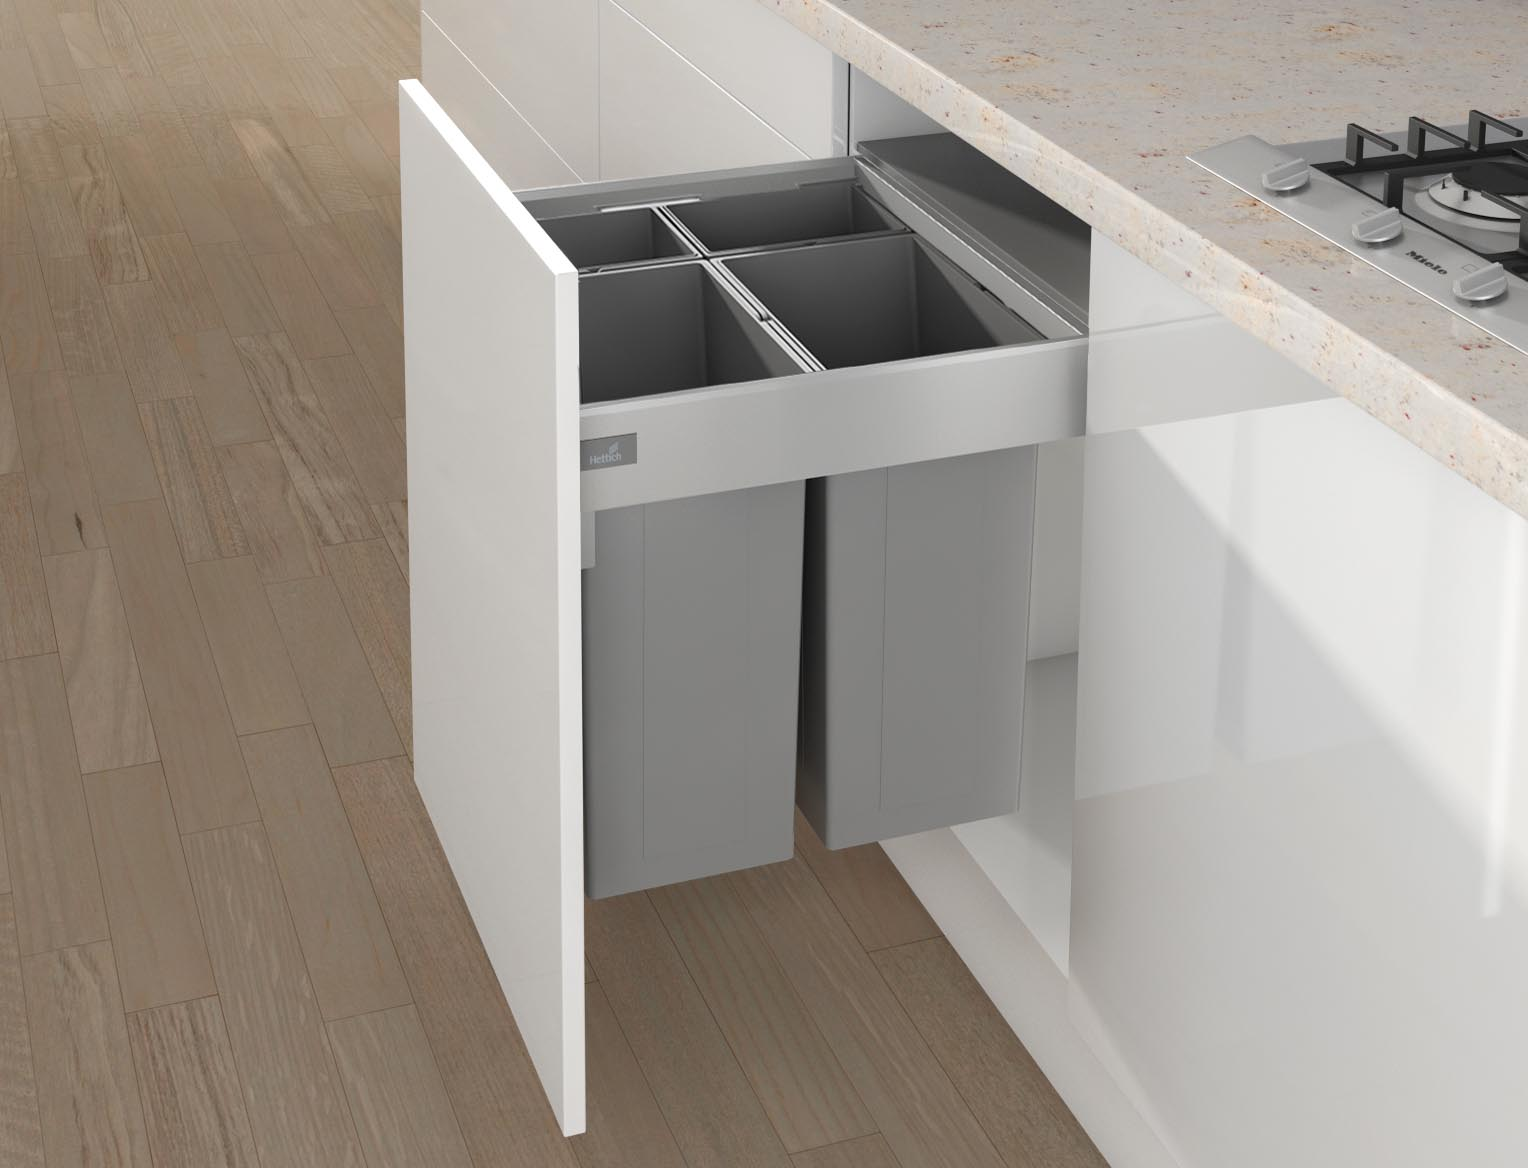 Waste Systems By Hettich The Kitchen And Bathroom Blog